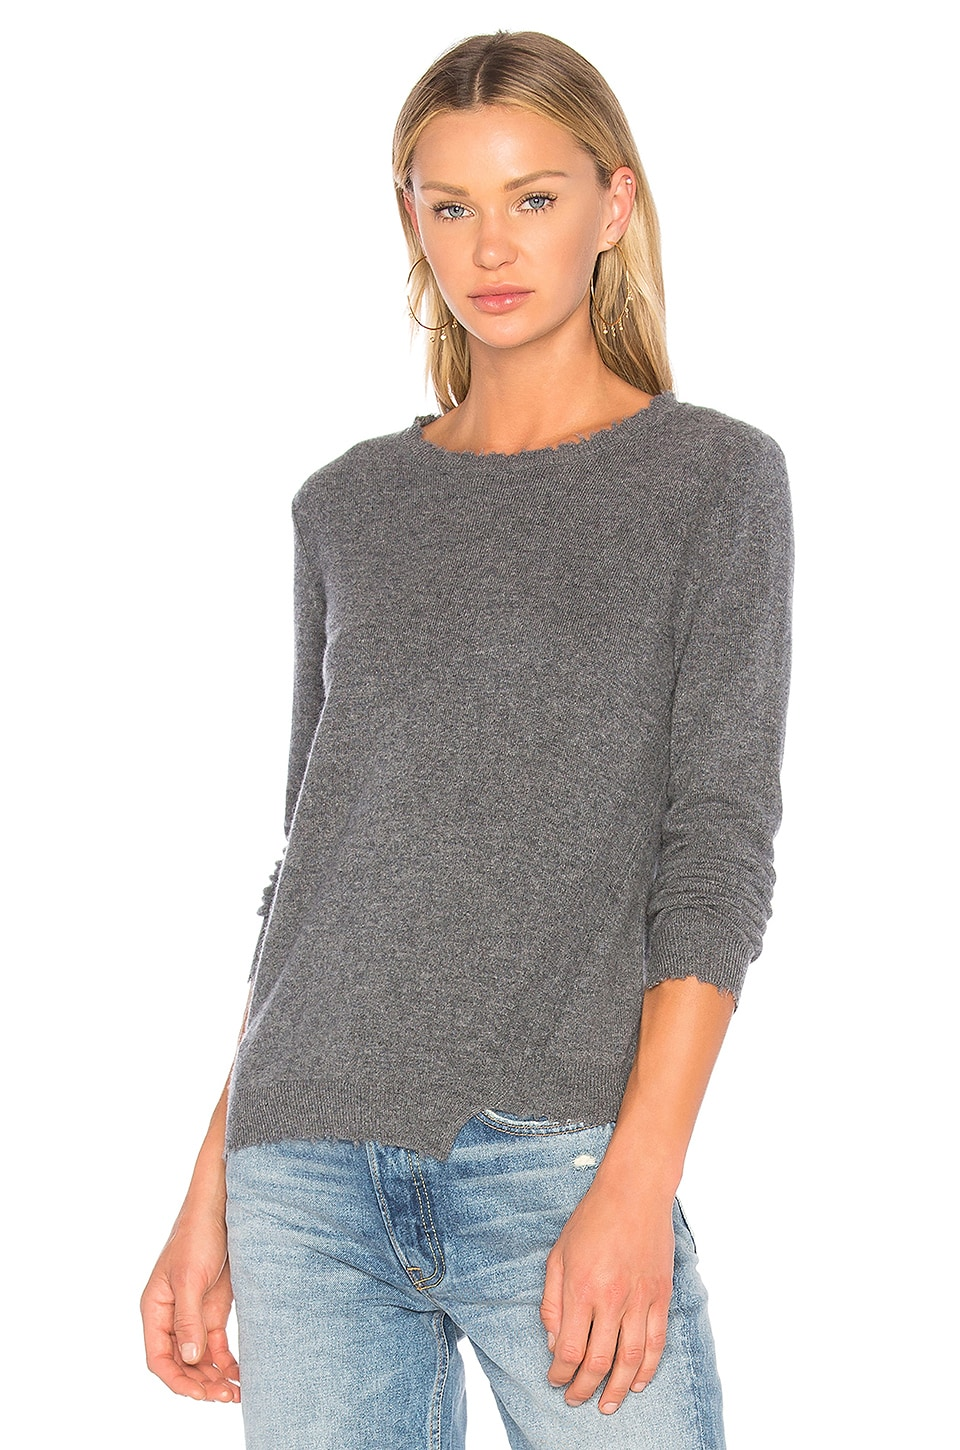 Maise Long Sleeve Sweater